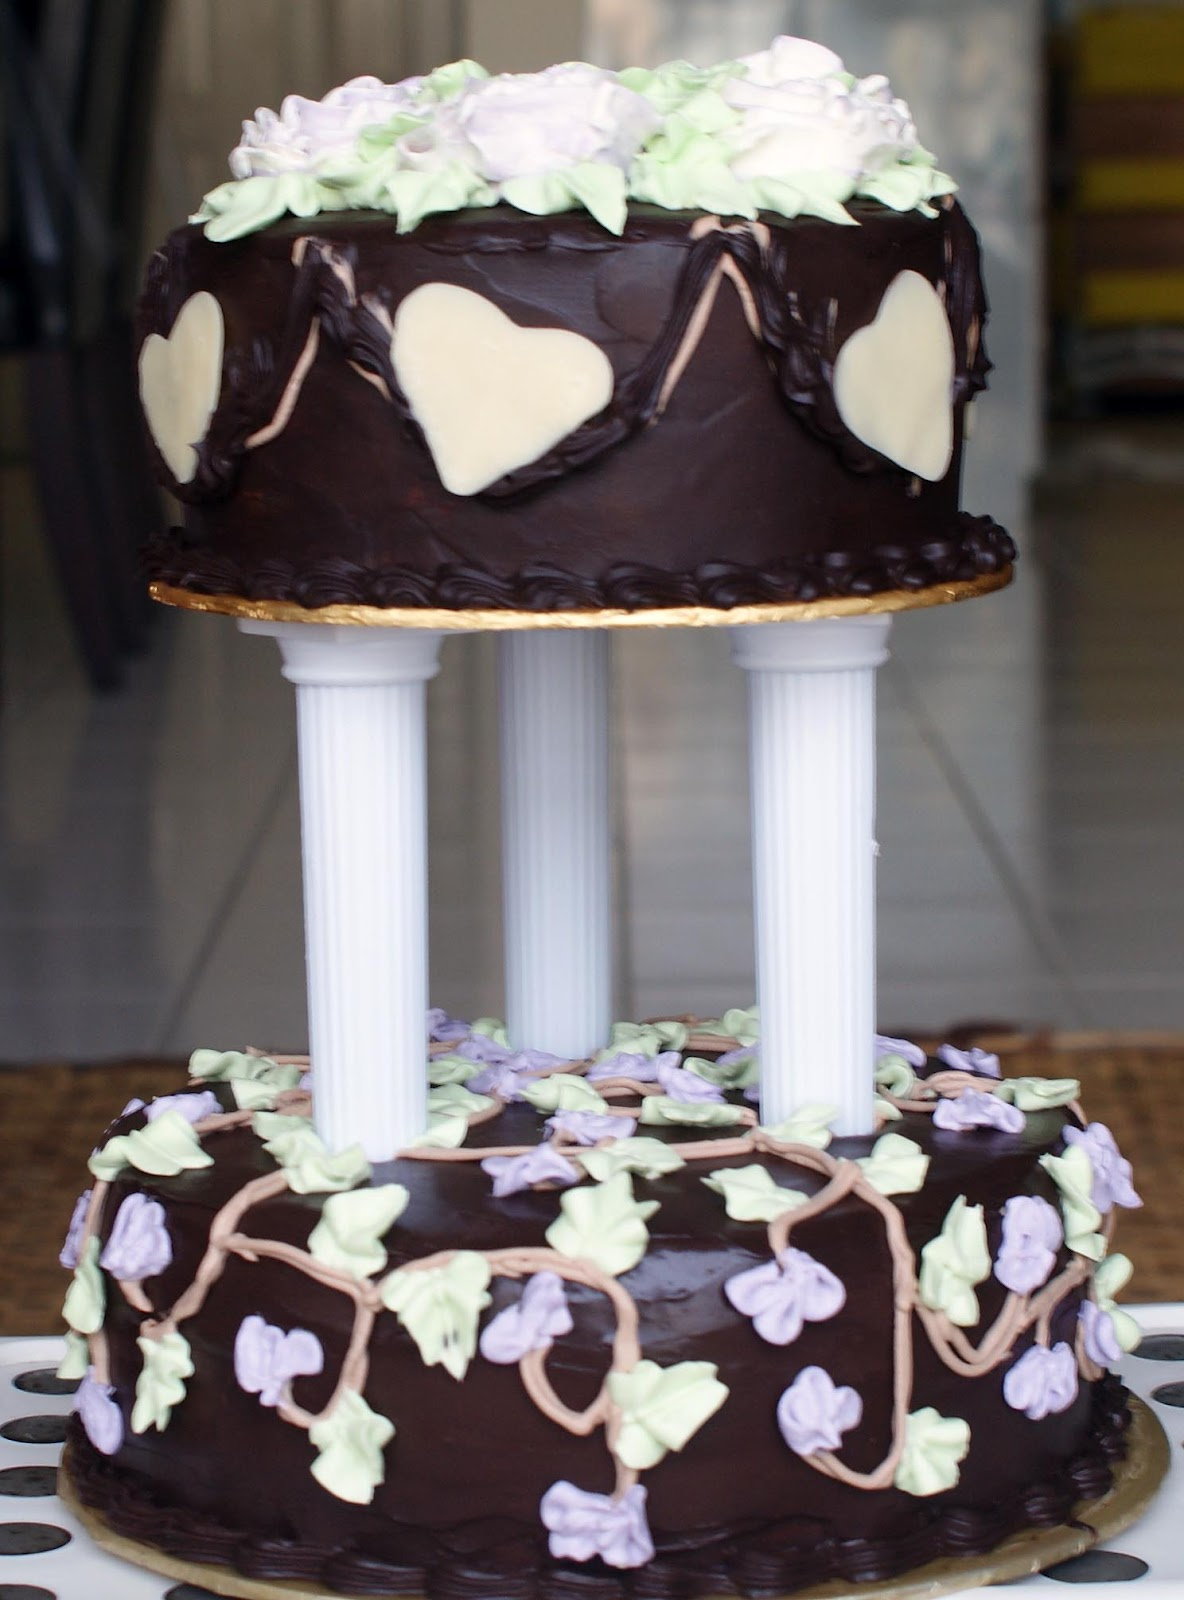 How To Make Tiered Cake With Pillars